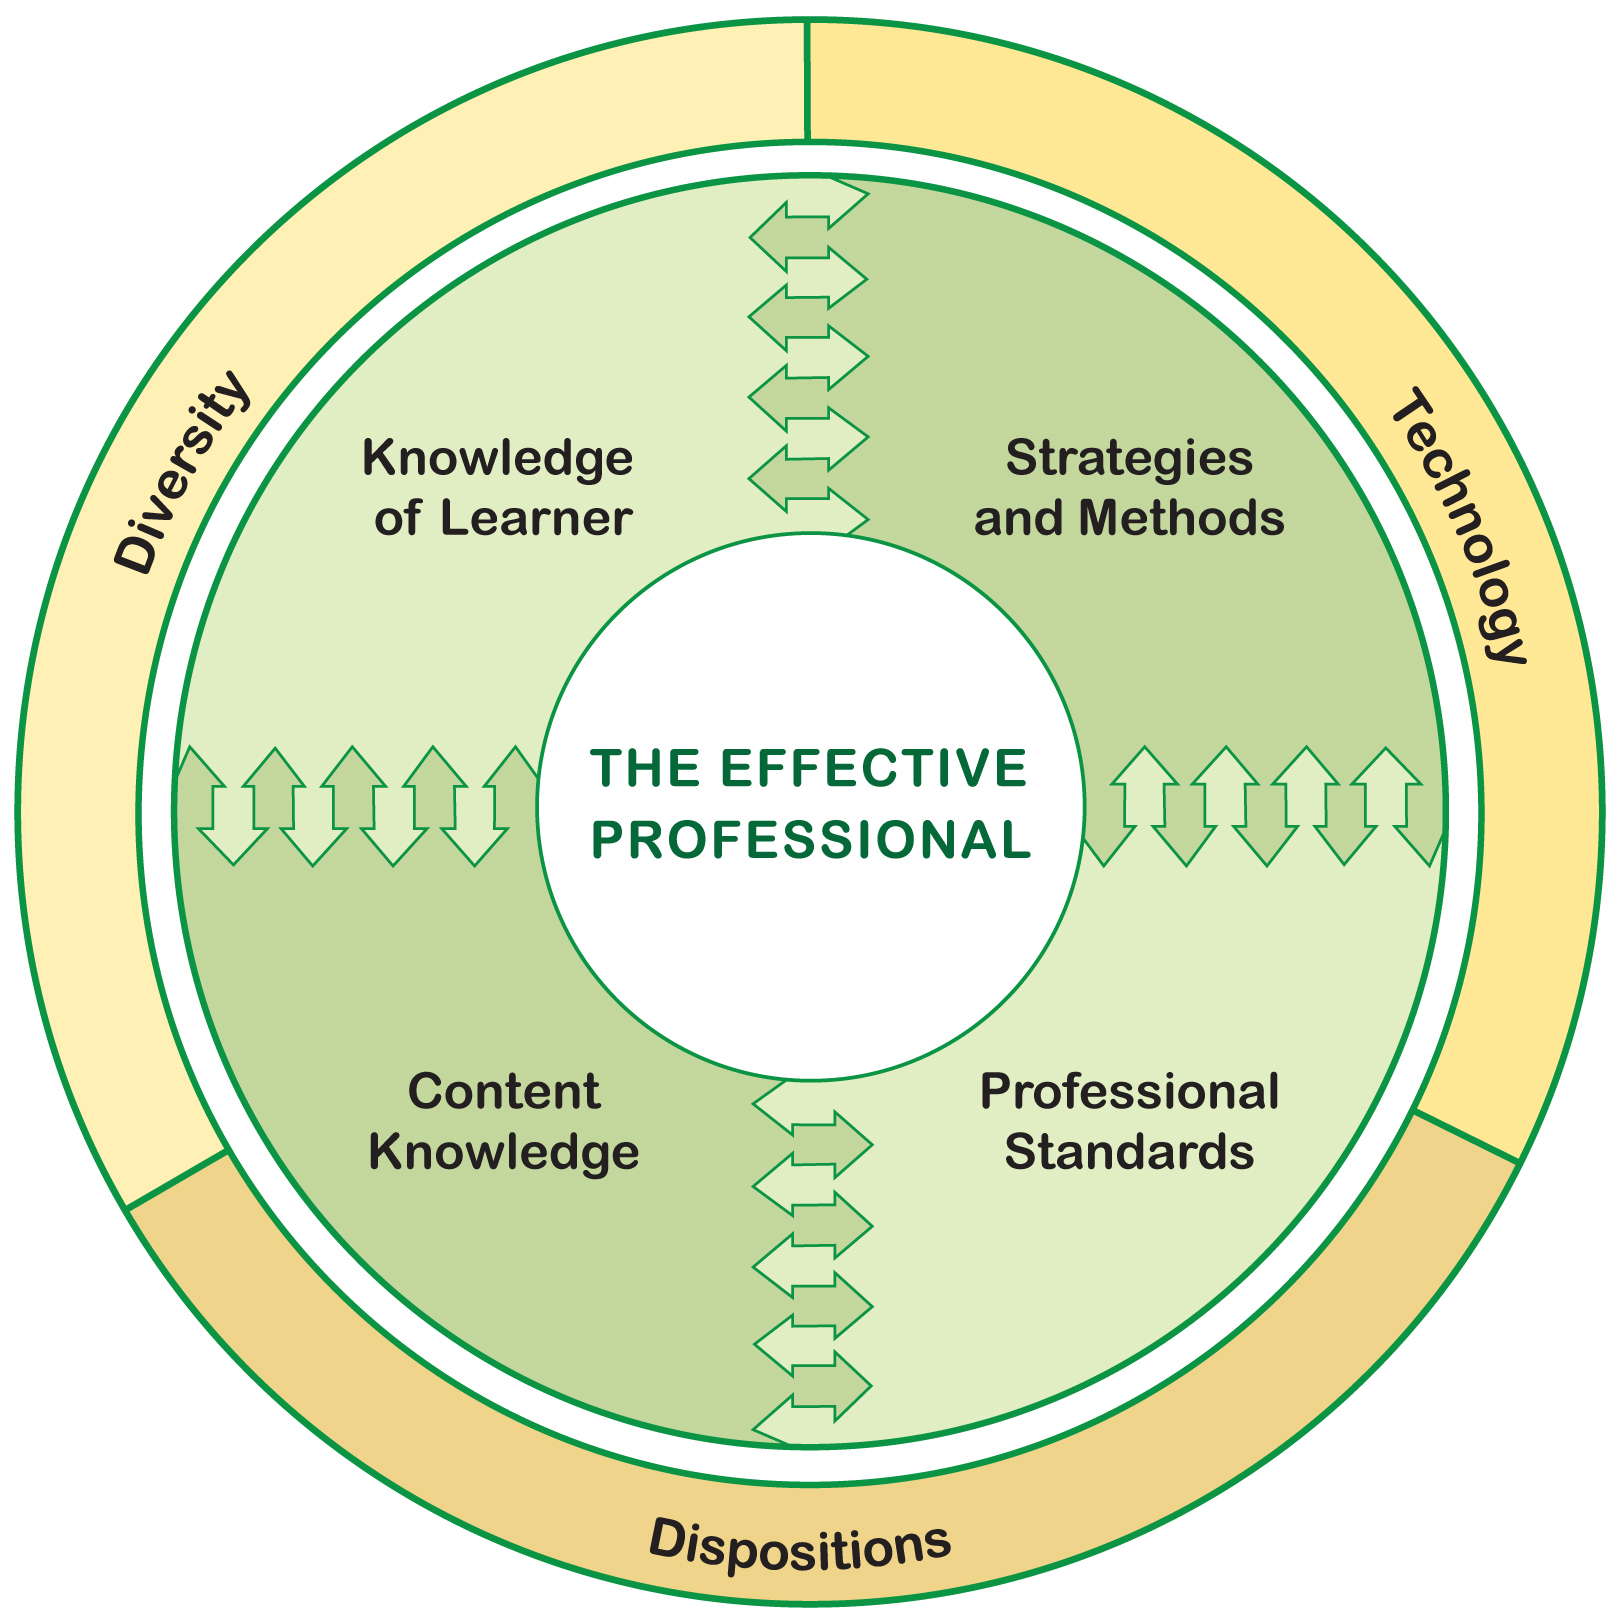 the concept of excellence in education The center's mission is to nurture high school and university scholars to careers of excellence and leadership in science, technology, engineering and mathematics, and to encourage collaboration between and among leaders in the global community.